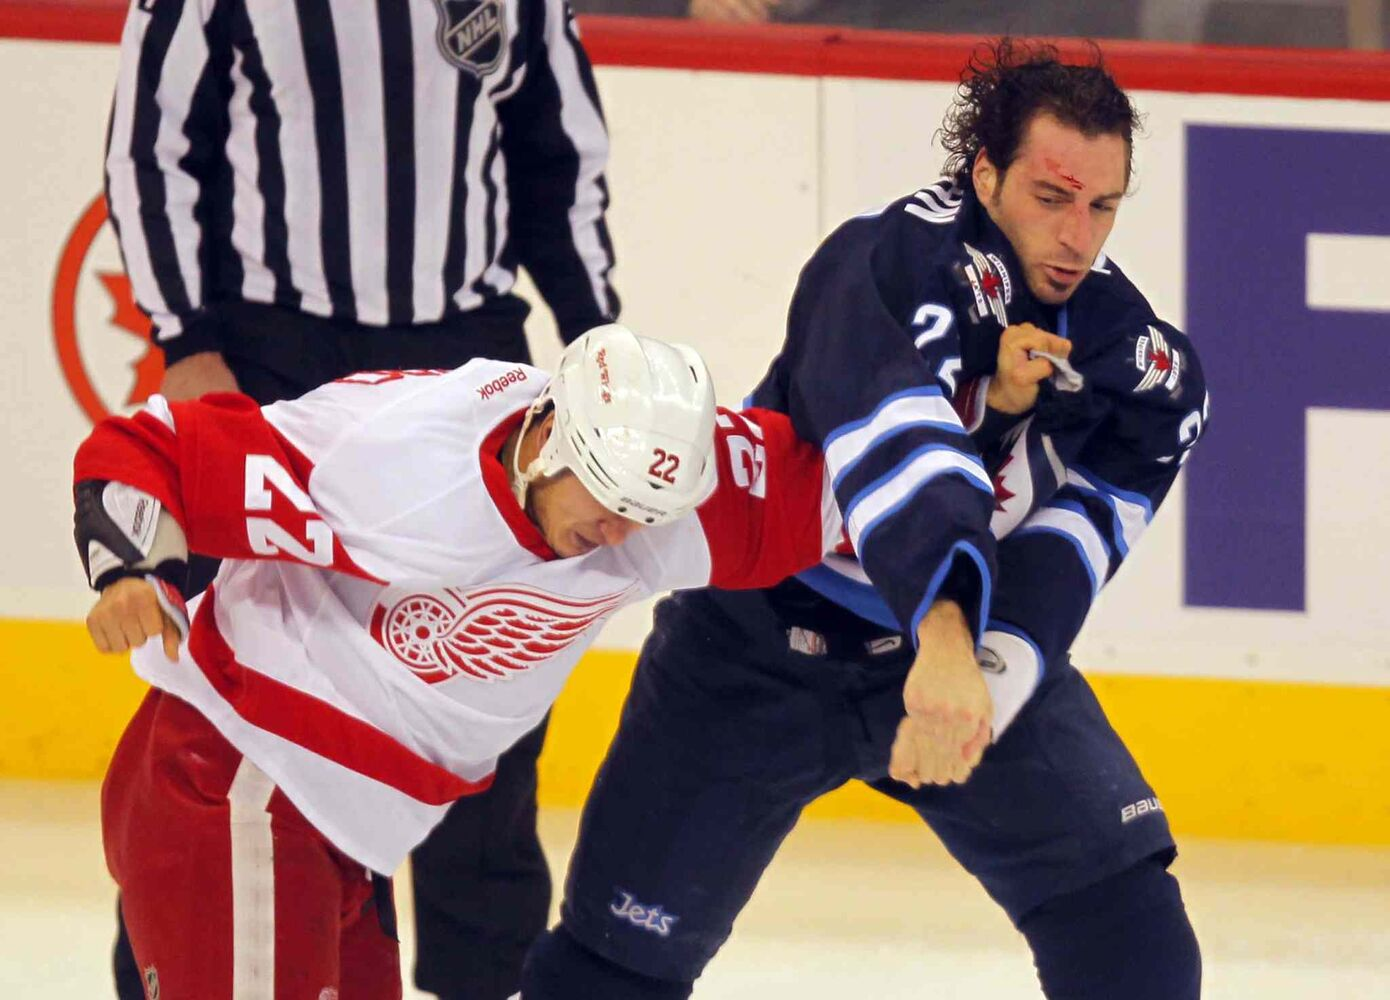 Detroit Red Wings forward Jordan Tootoo opens a gash on Winnipeg Jets forward Chris Thorburn during a first-period scrap.